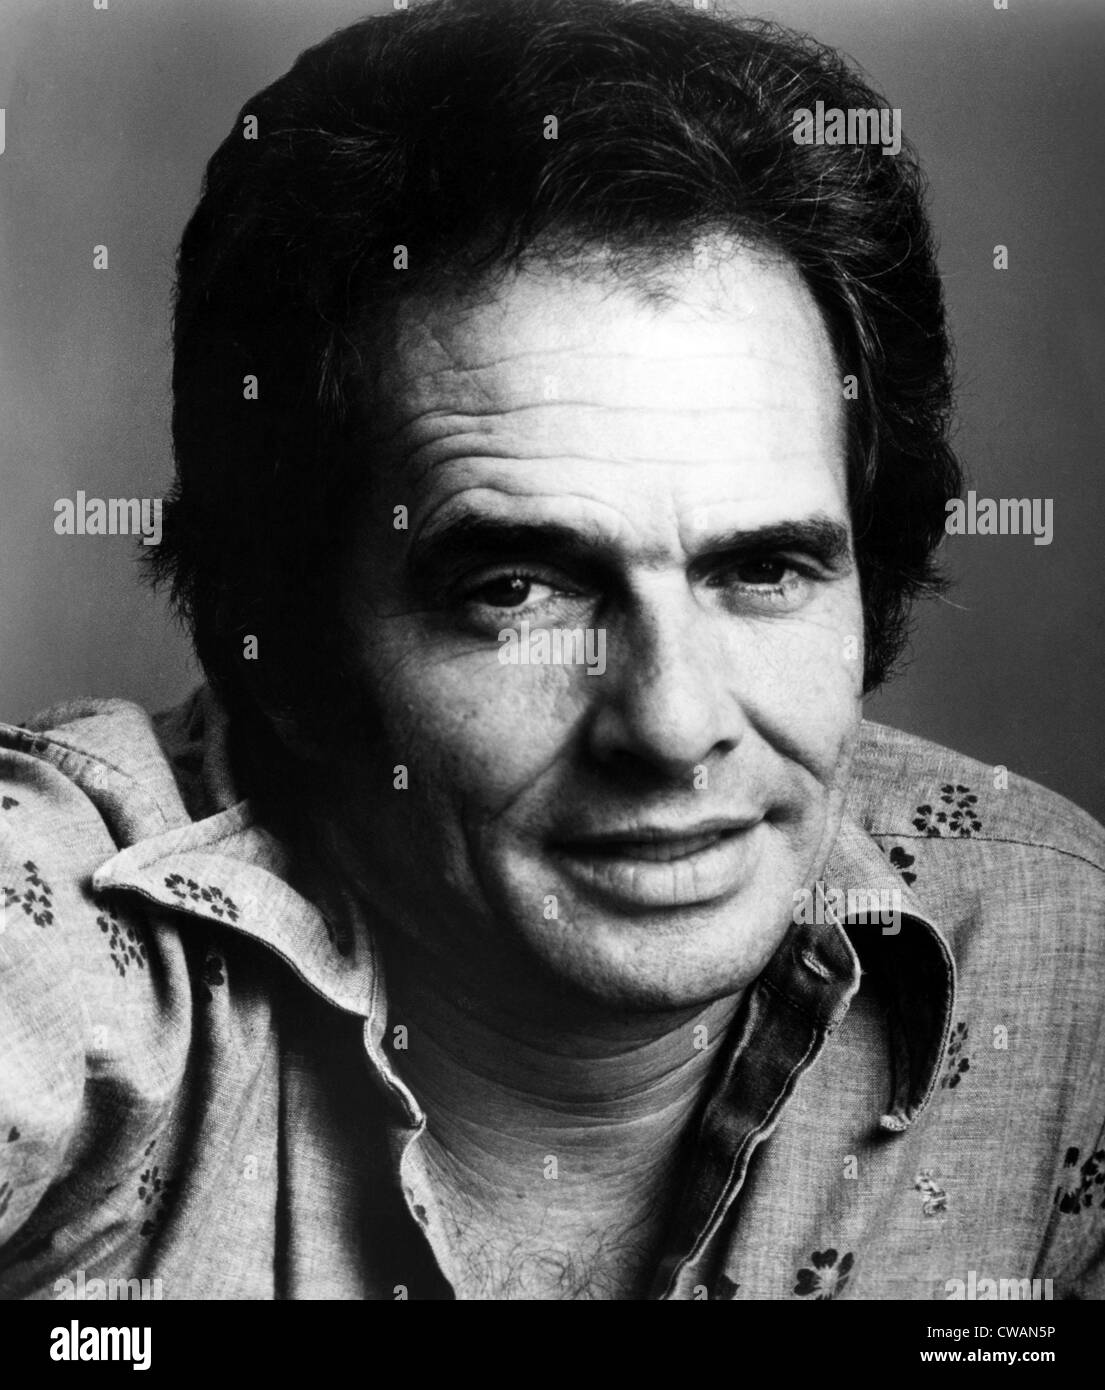 Countrysänger Merle Haggard. ca 1979. Höflichkeit: CSU Archive/Everett Collection Stockbild